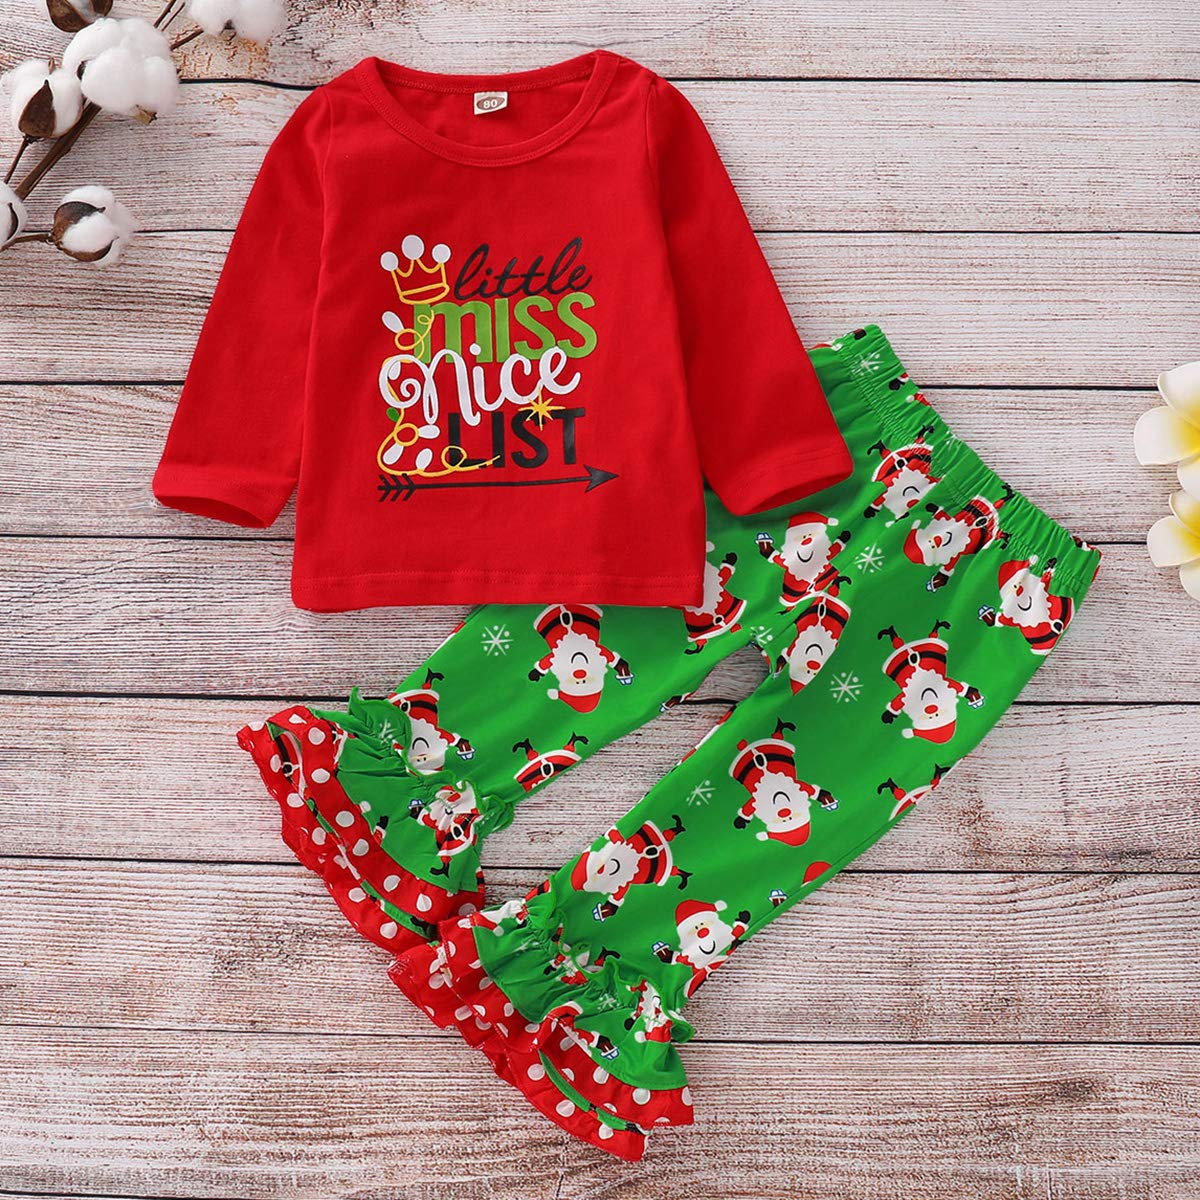 0a3386883ad4 Amazon.com: Toddler Baby Girls Christmas Clothes Long Sleeve Shirt & Ruffle  Pants Outfits Set: Clothing